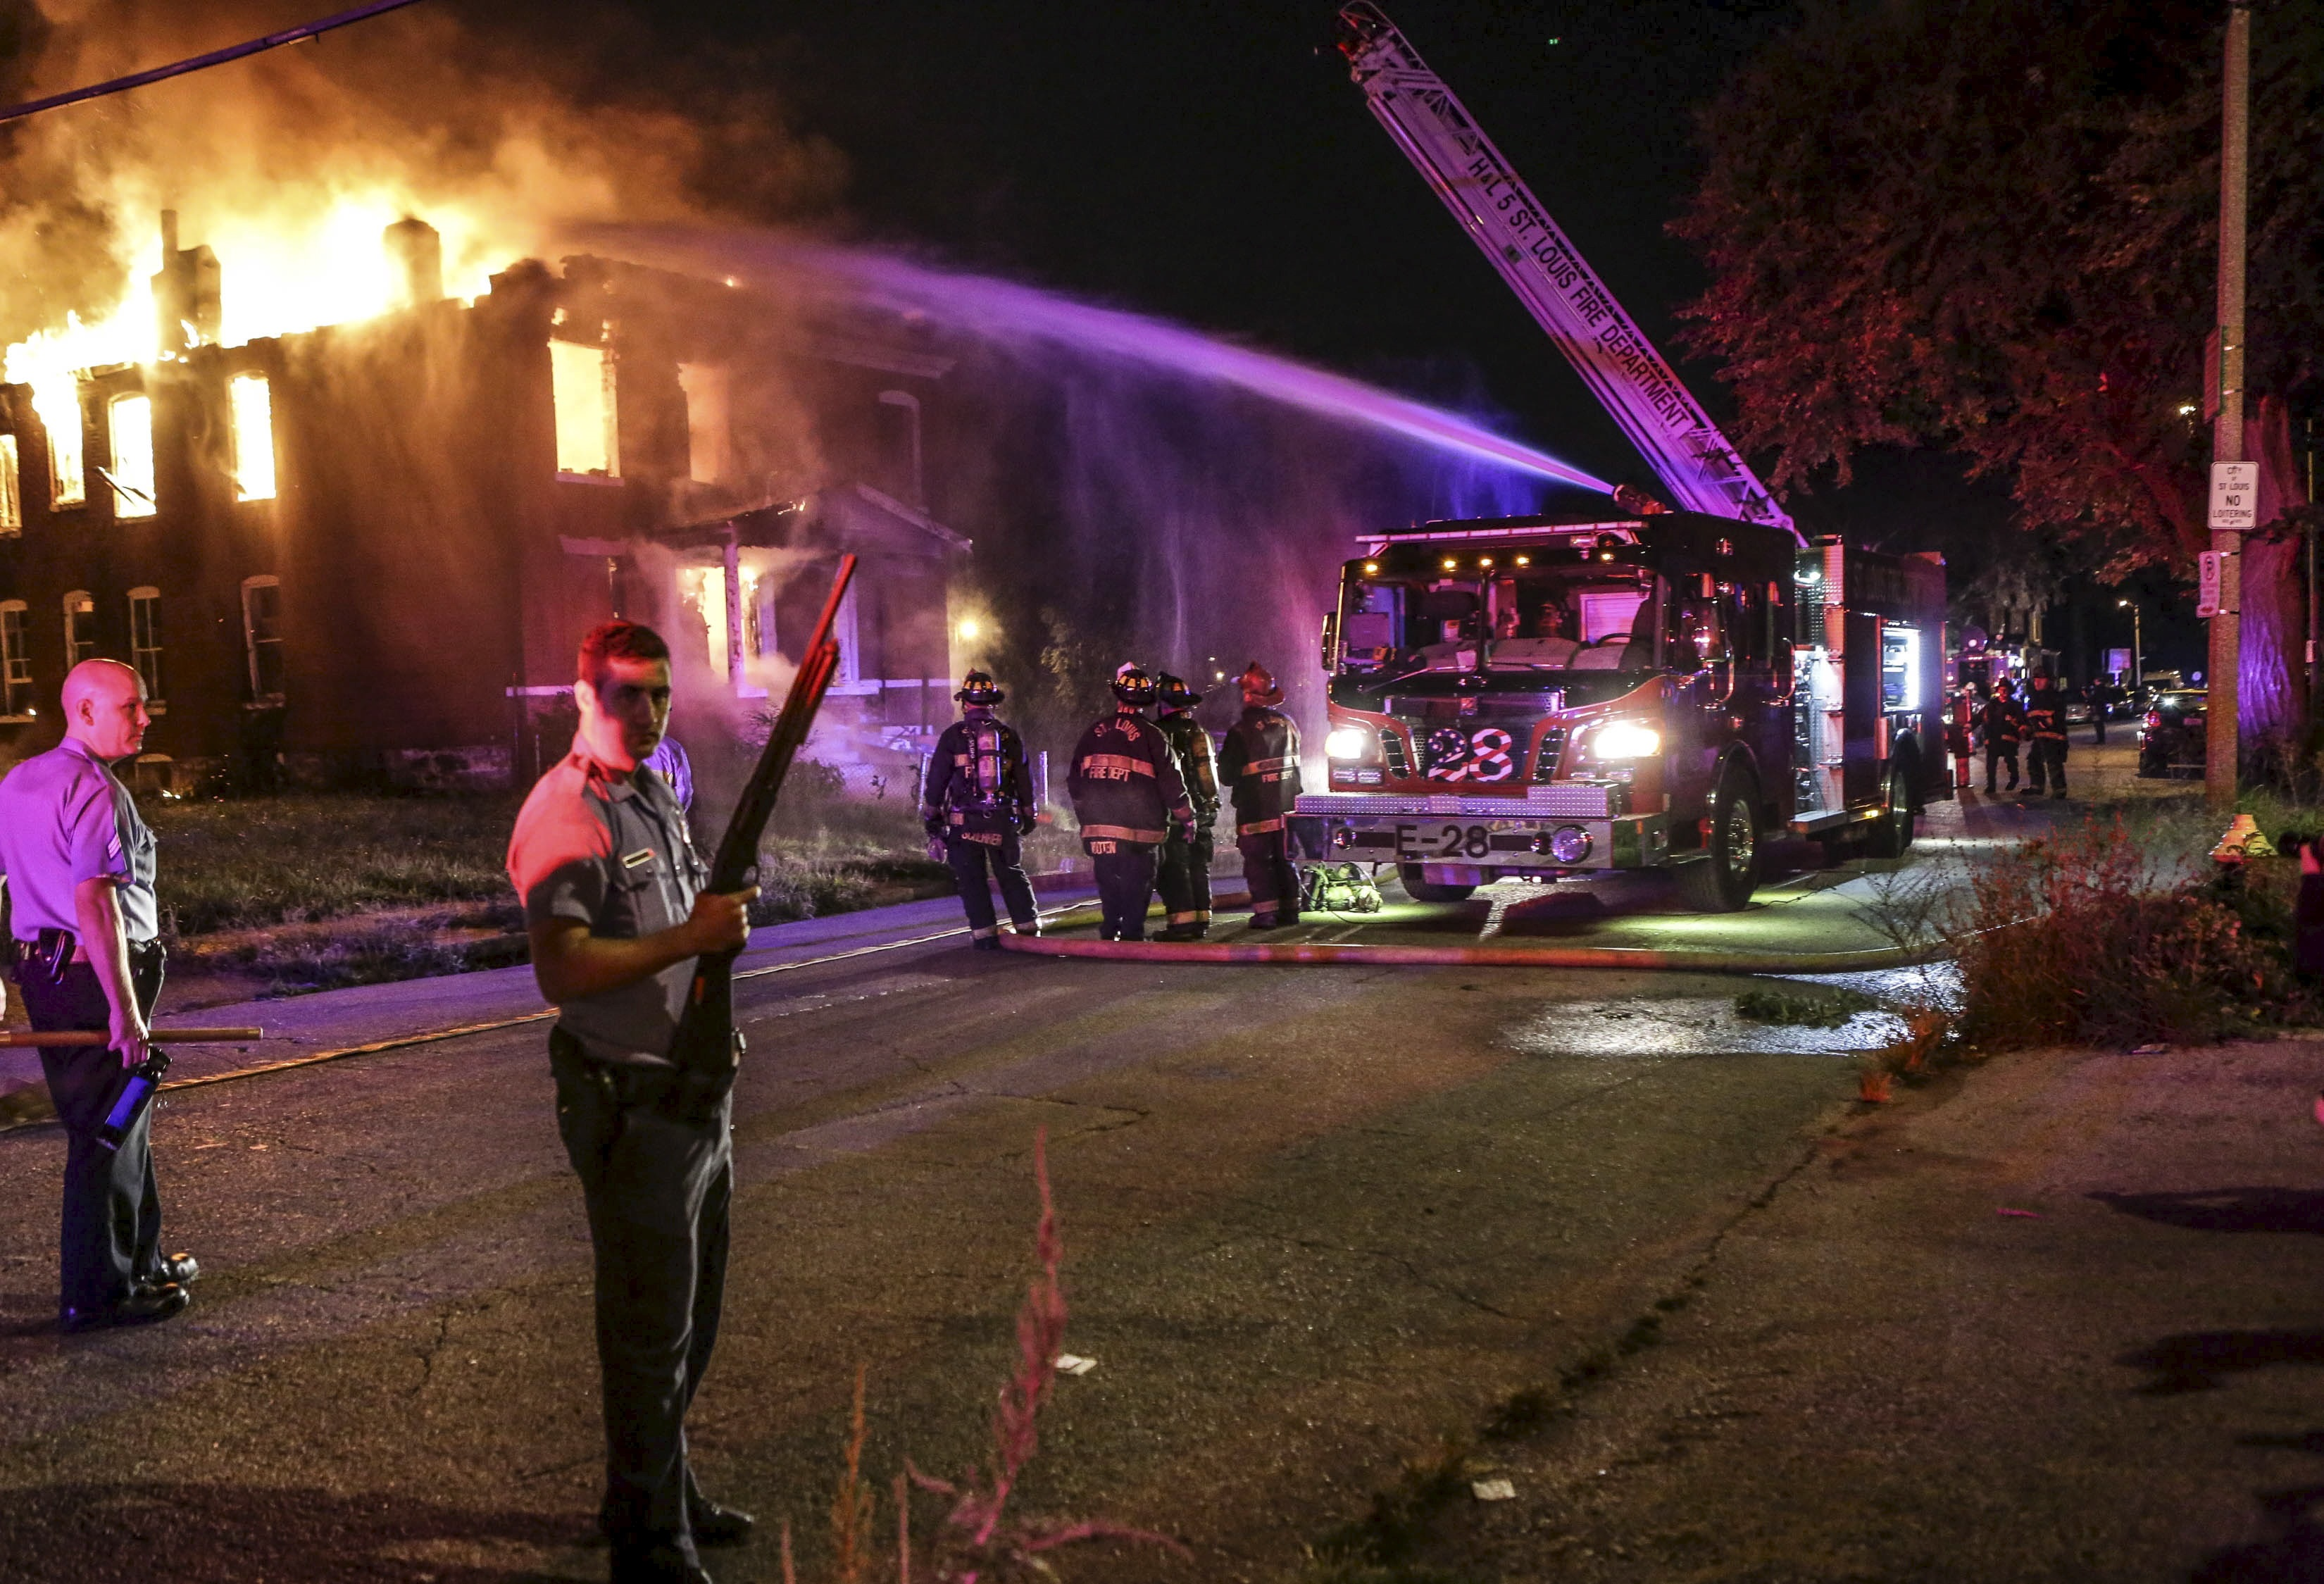 Firefighters attempt to put out a fire at an abandoned building with the protection of St. Louis City Police in St. Louis, Missouri August 19, 2015. According to eyewitness, protesters demonstrating against a police shooting earlier in the day in St. Louis set the building on fire. St. Louis police fatally shot a black teenager on Wednesday who they say pointed a gun at them, and later faced angry crowds, reigniting racial tensions first sparked by the killing of an unarmed black teen in another Missouri town a year ago. REUTERS/Lawrence Bryant TPX IMAGES OF THE DAY - RTX1OVQE